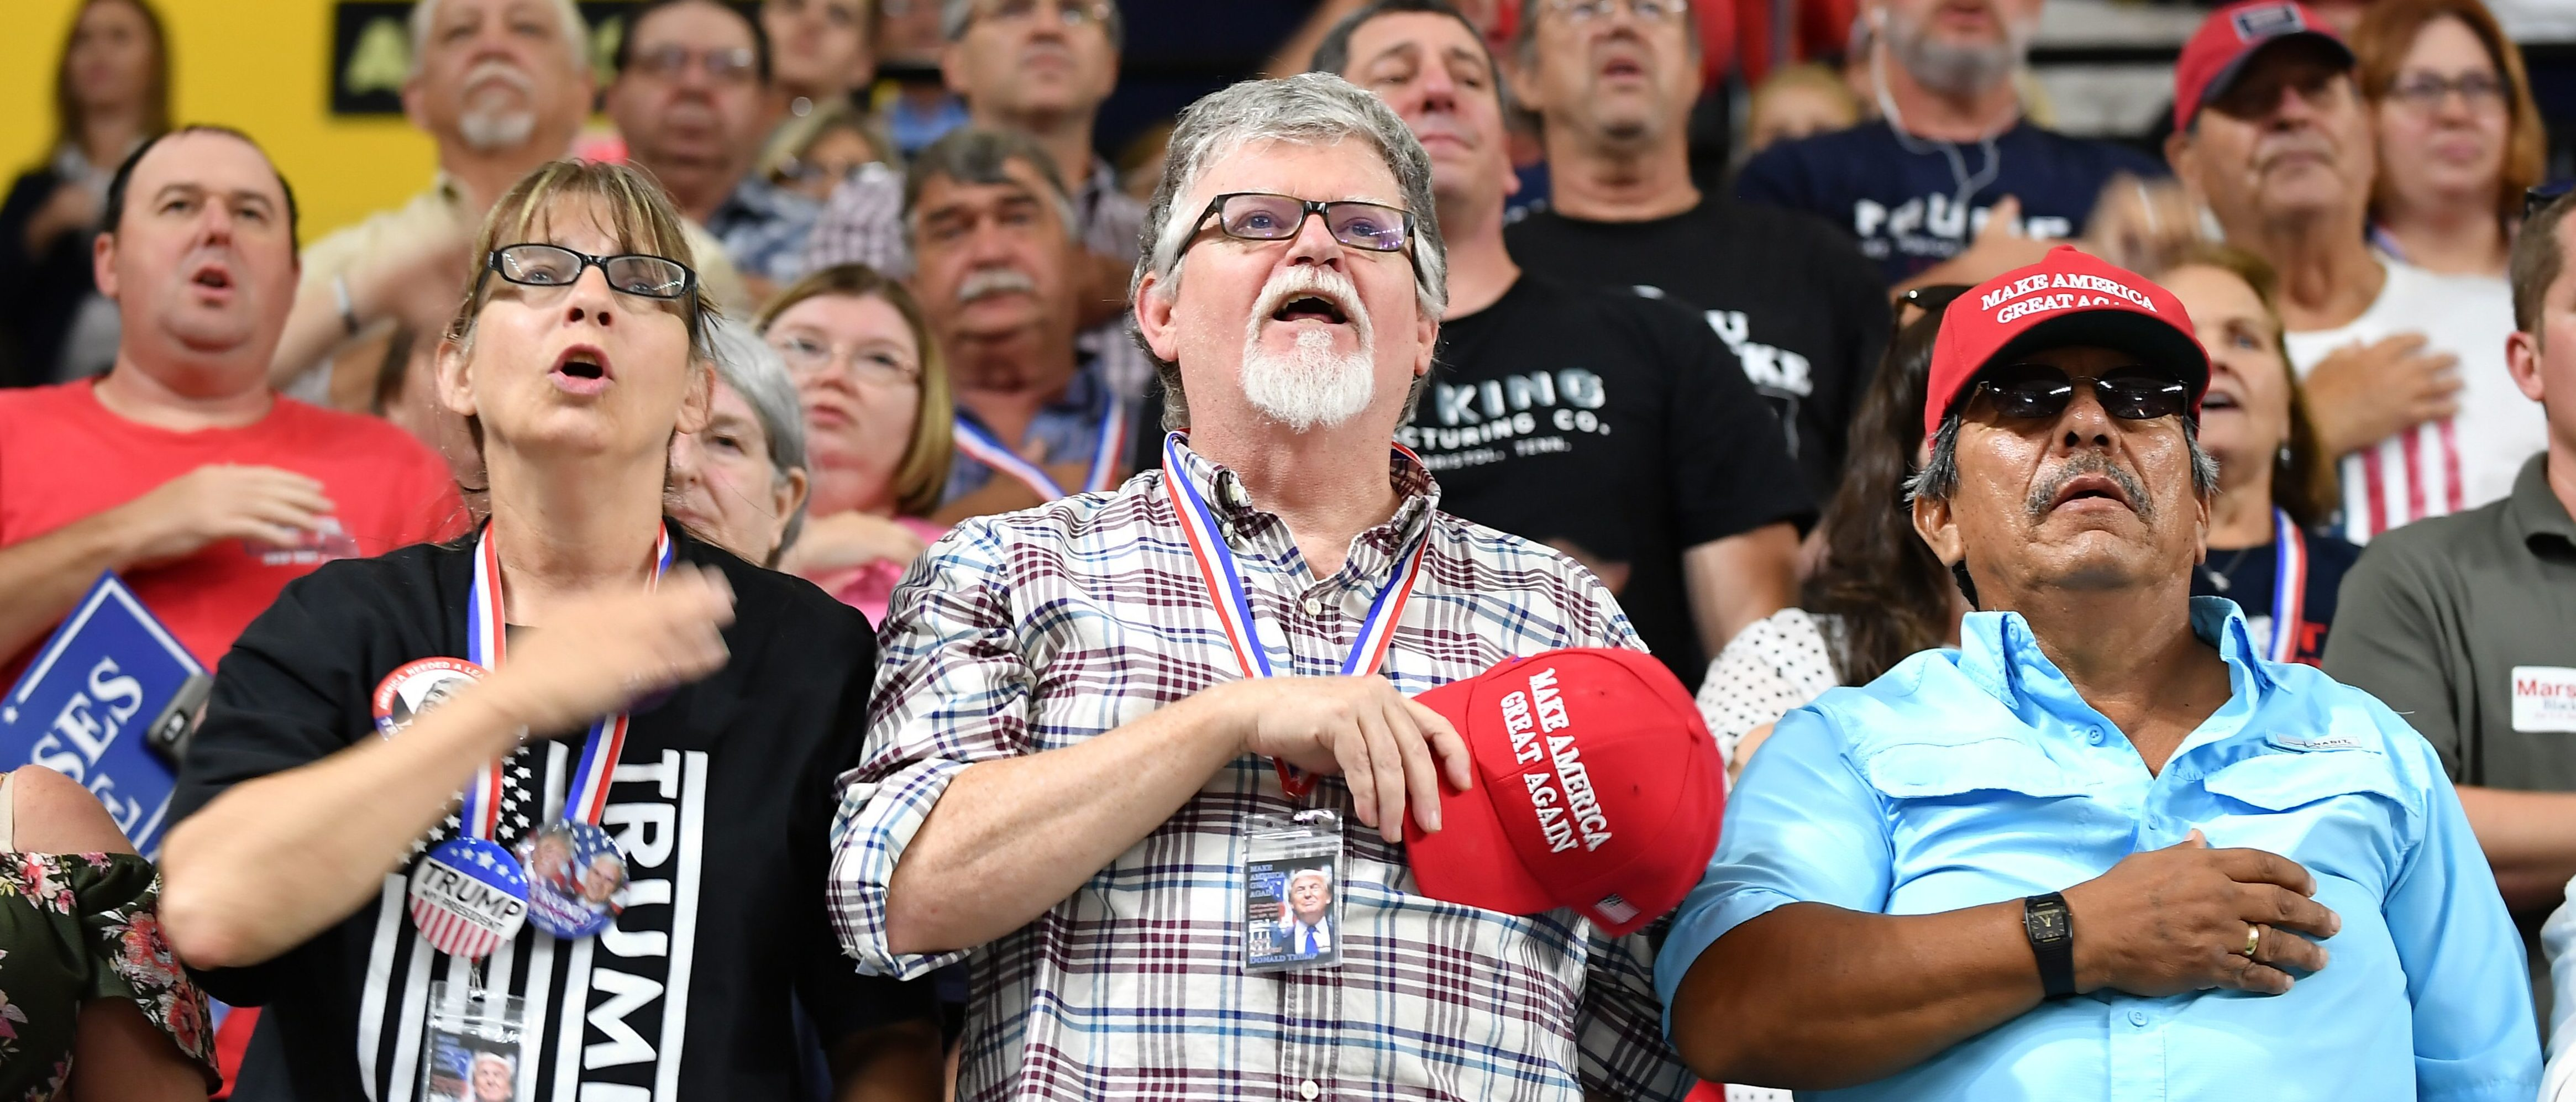 "Supporters recite the Pledge of Allegiance prior to US President Donald Trump speaking at a ""Make America Great Again"" rally at Freedom Hall Civic Center in Johnson City, Tennessee on October 1, 2018. (Photo by MANDEL NGAN/AFP/Getty Images)"